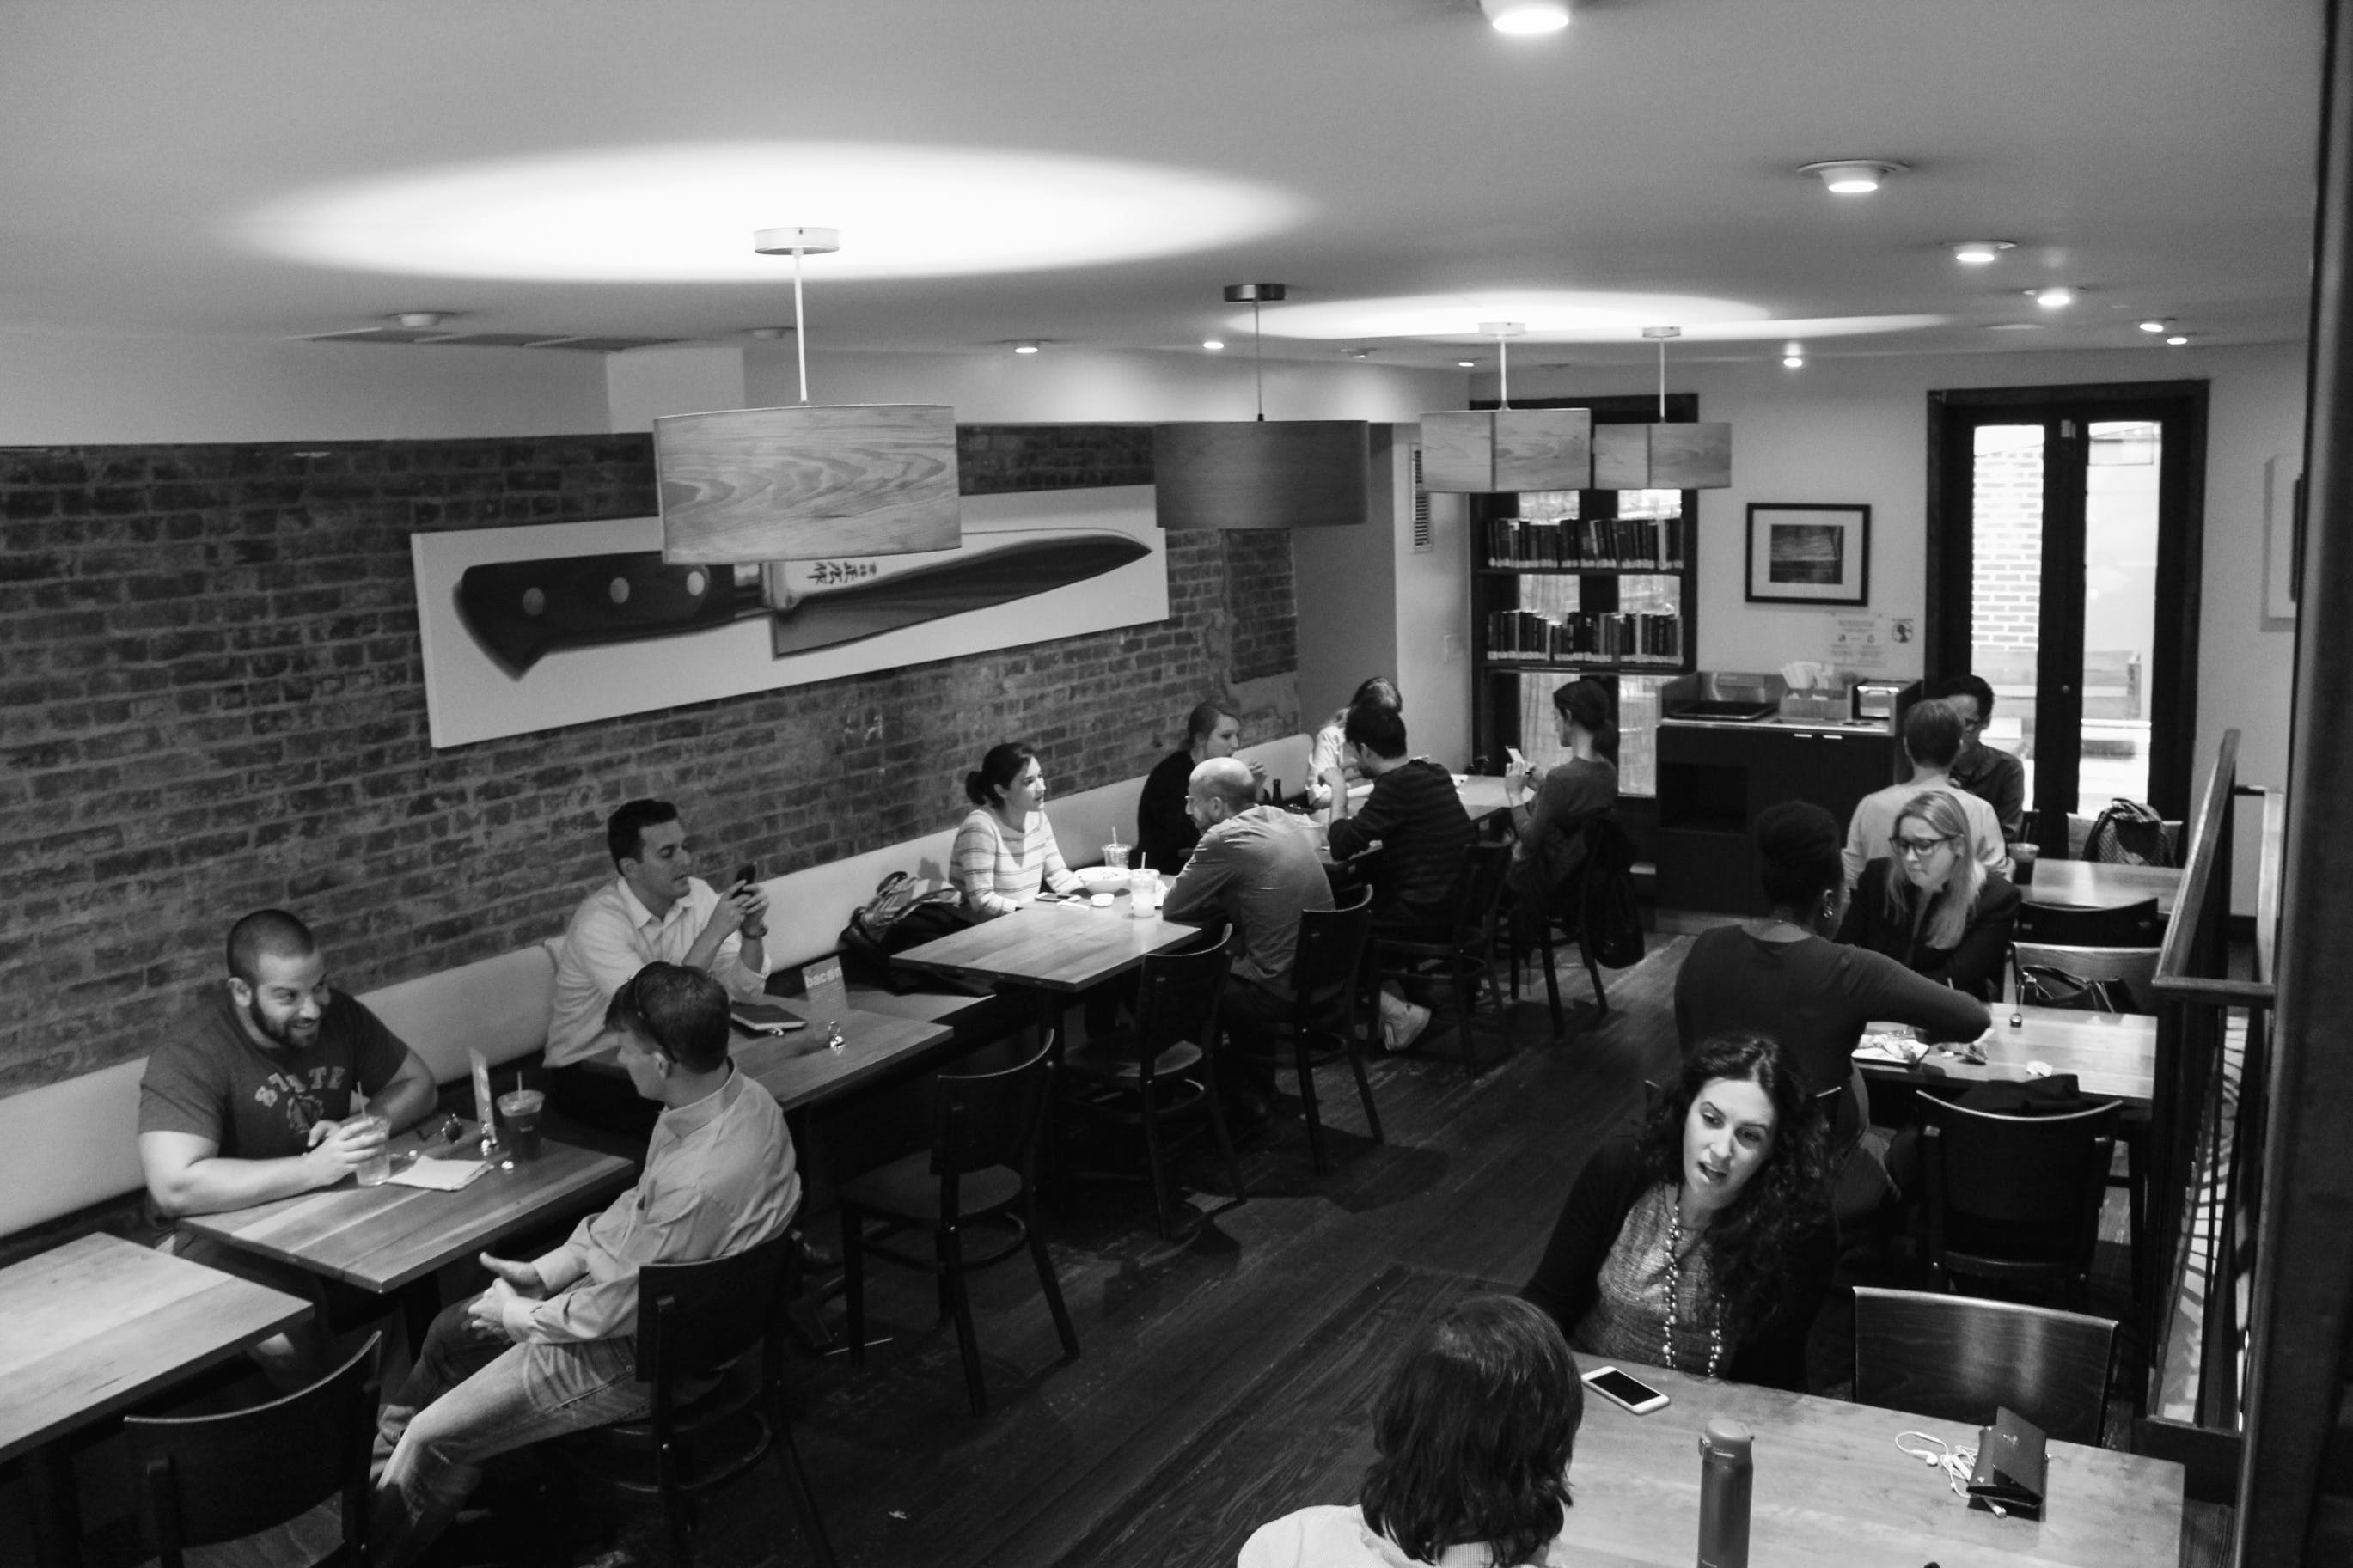 Grayscale Photography of People Inside Restaurant